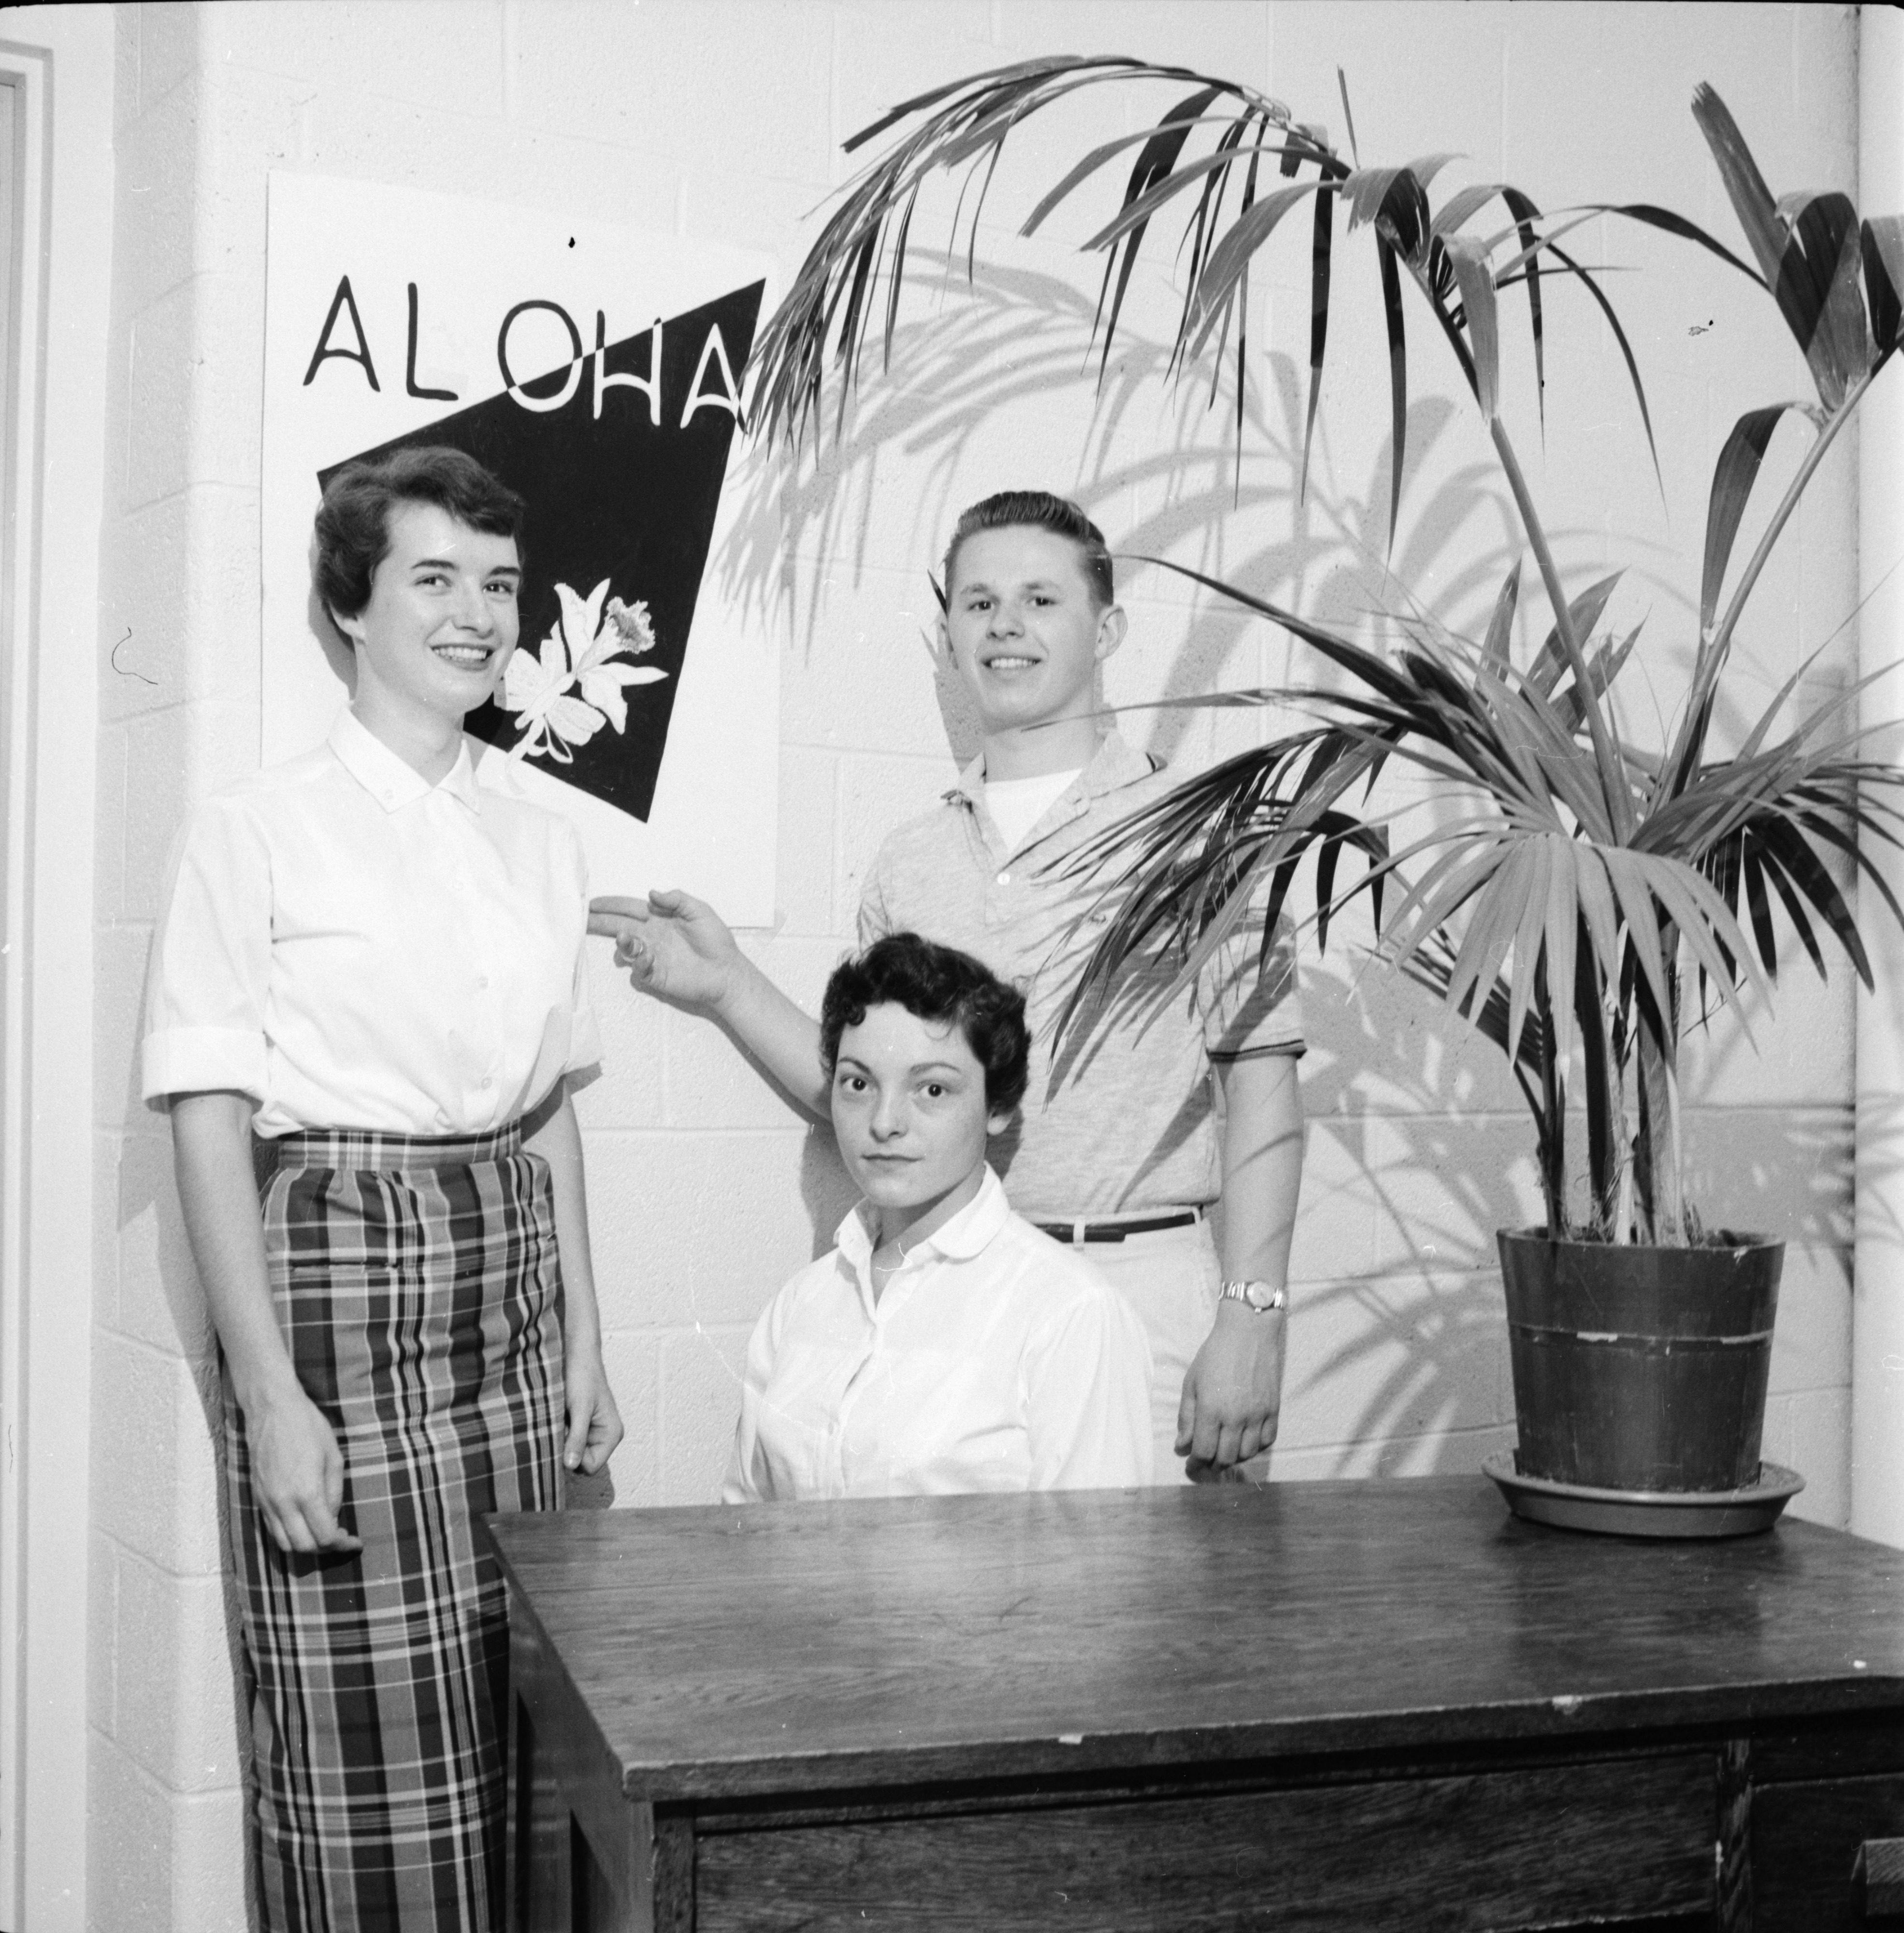 """Aloha Dance"" decorations, Ann Arbor High School, June 1958 image"